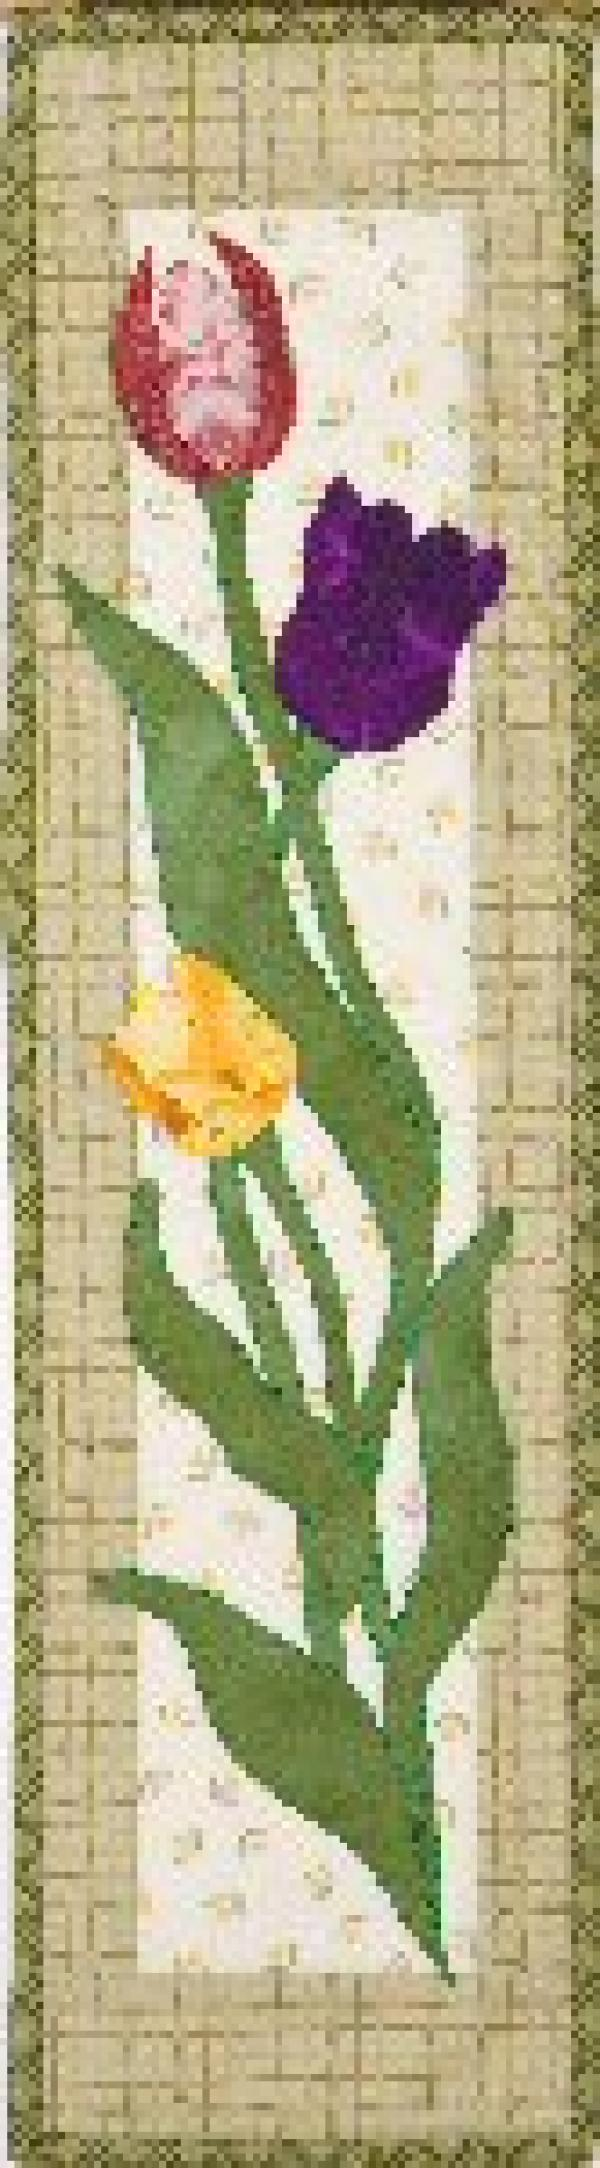 MM305 Tulips pattern and kit